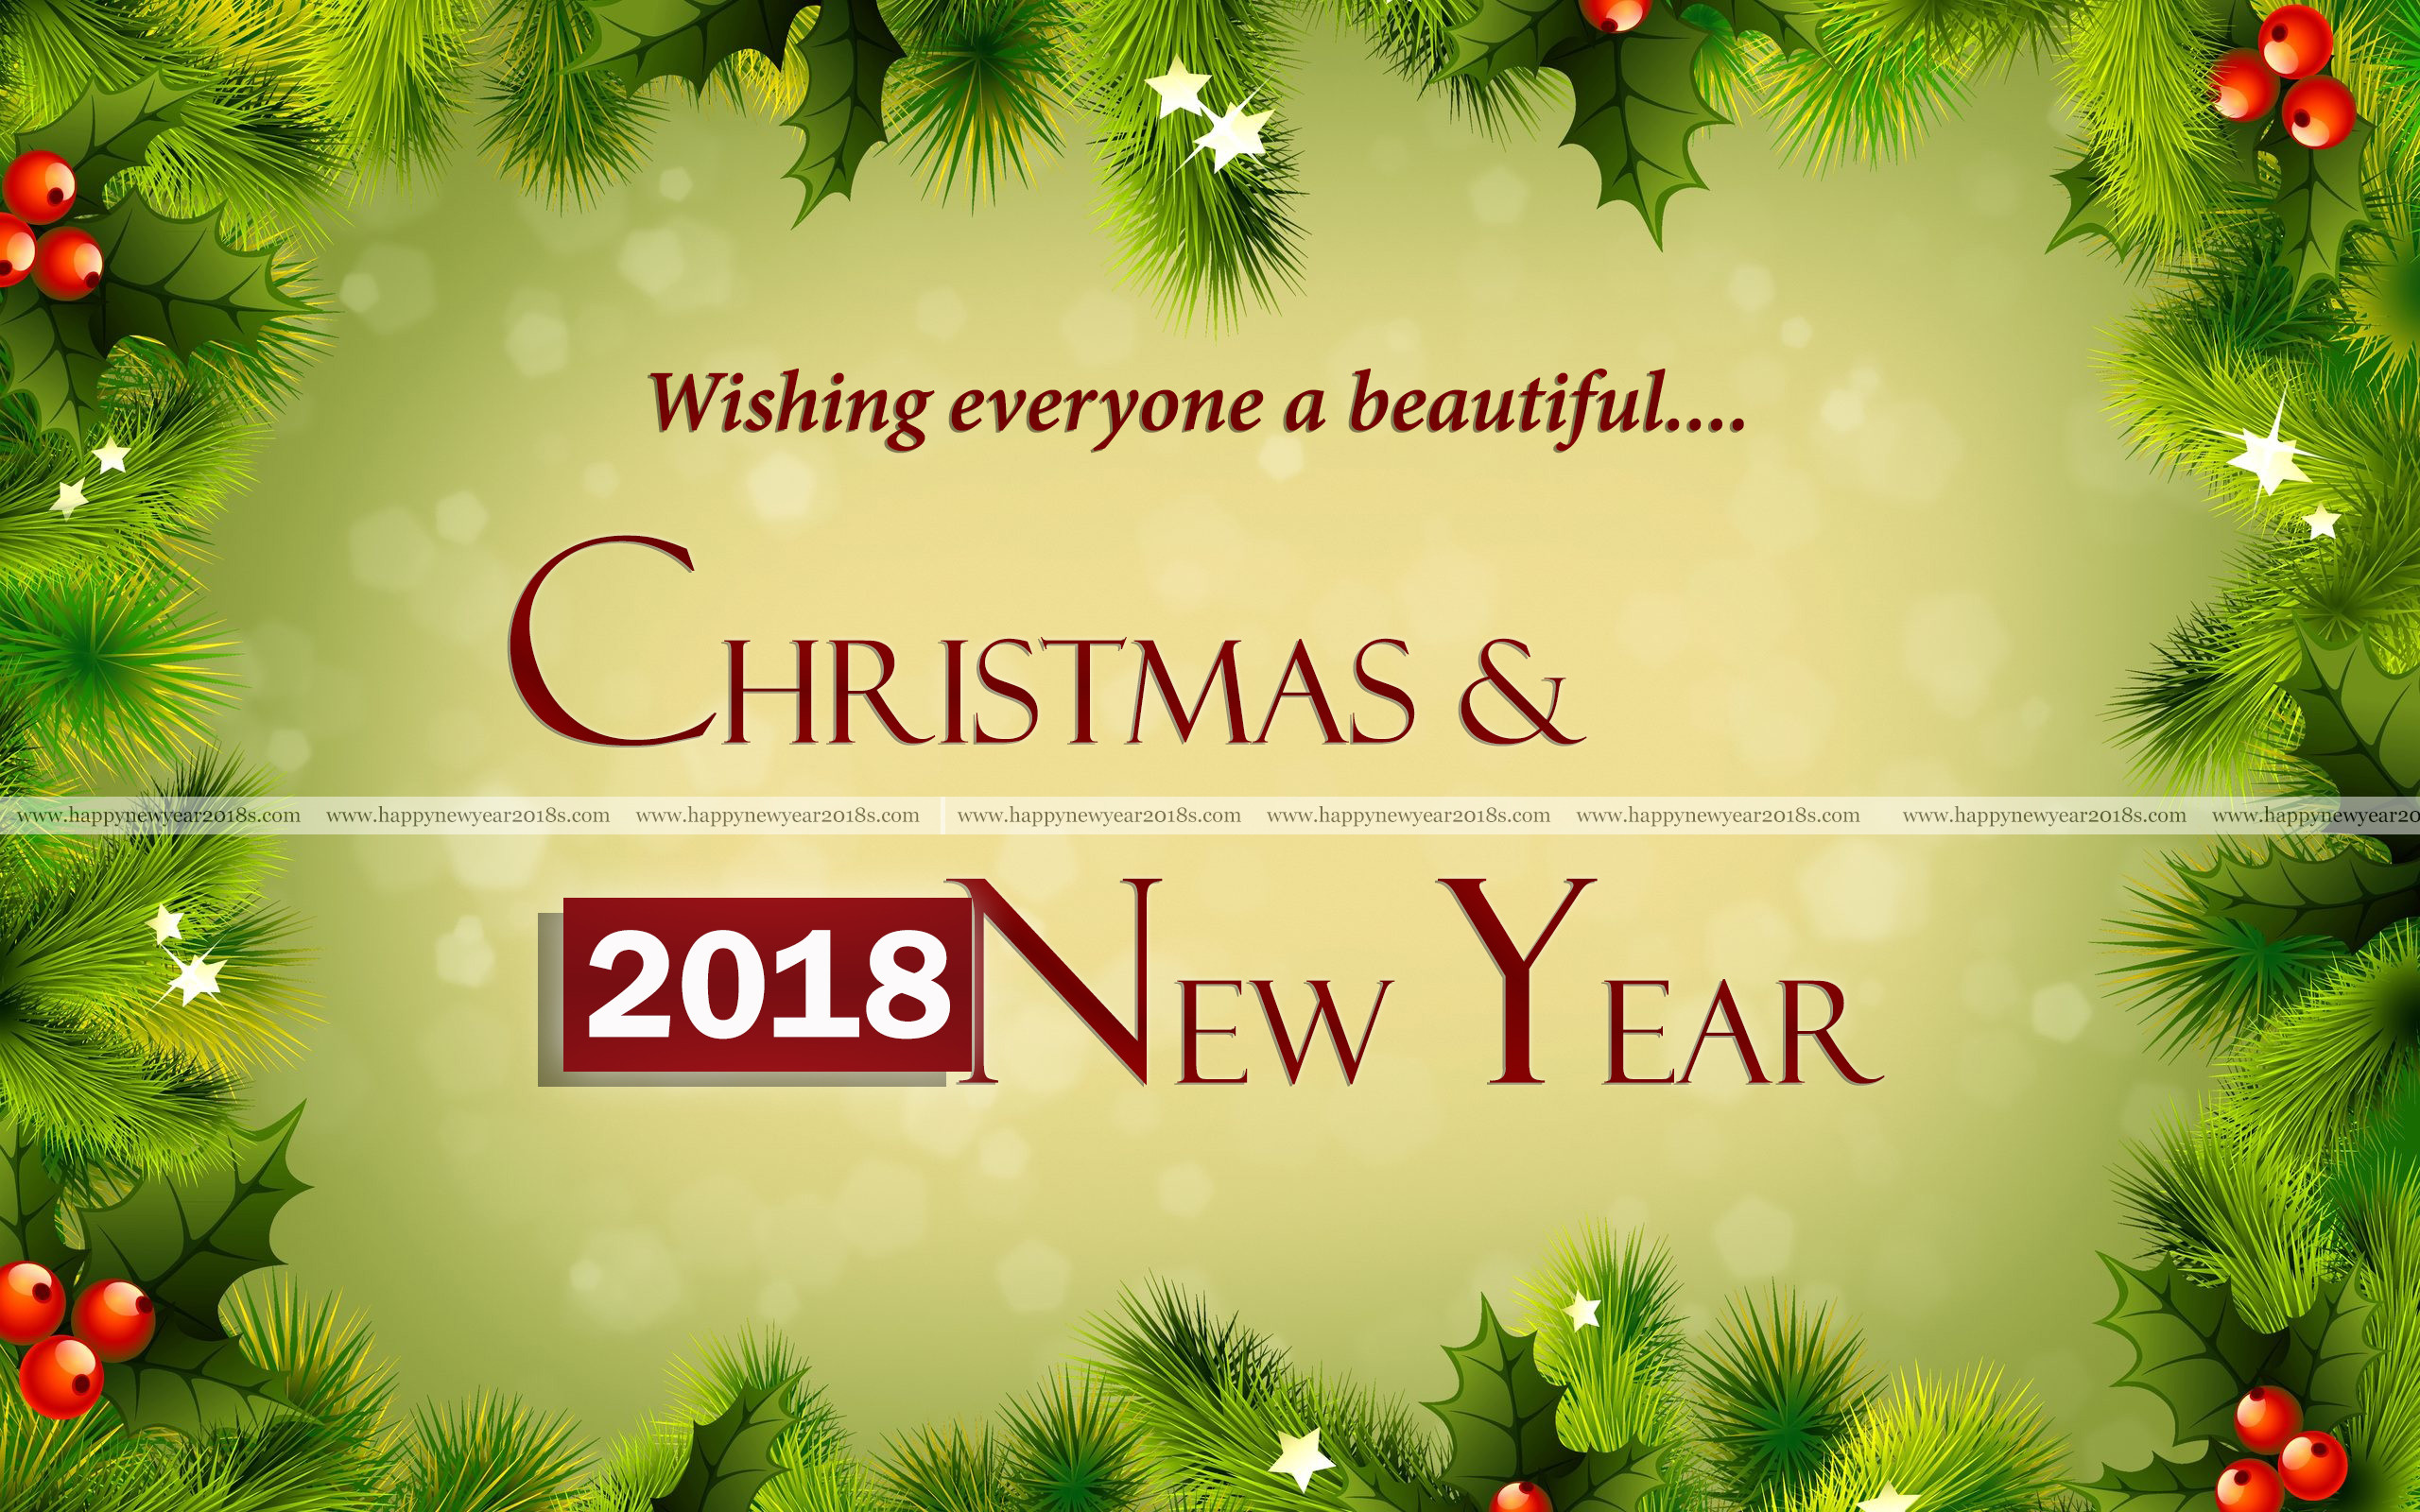 2560x1600 merry christmas 2017 images pictures wallpapers happy new year 2018 images pictures wallpapers download